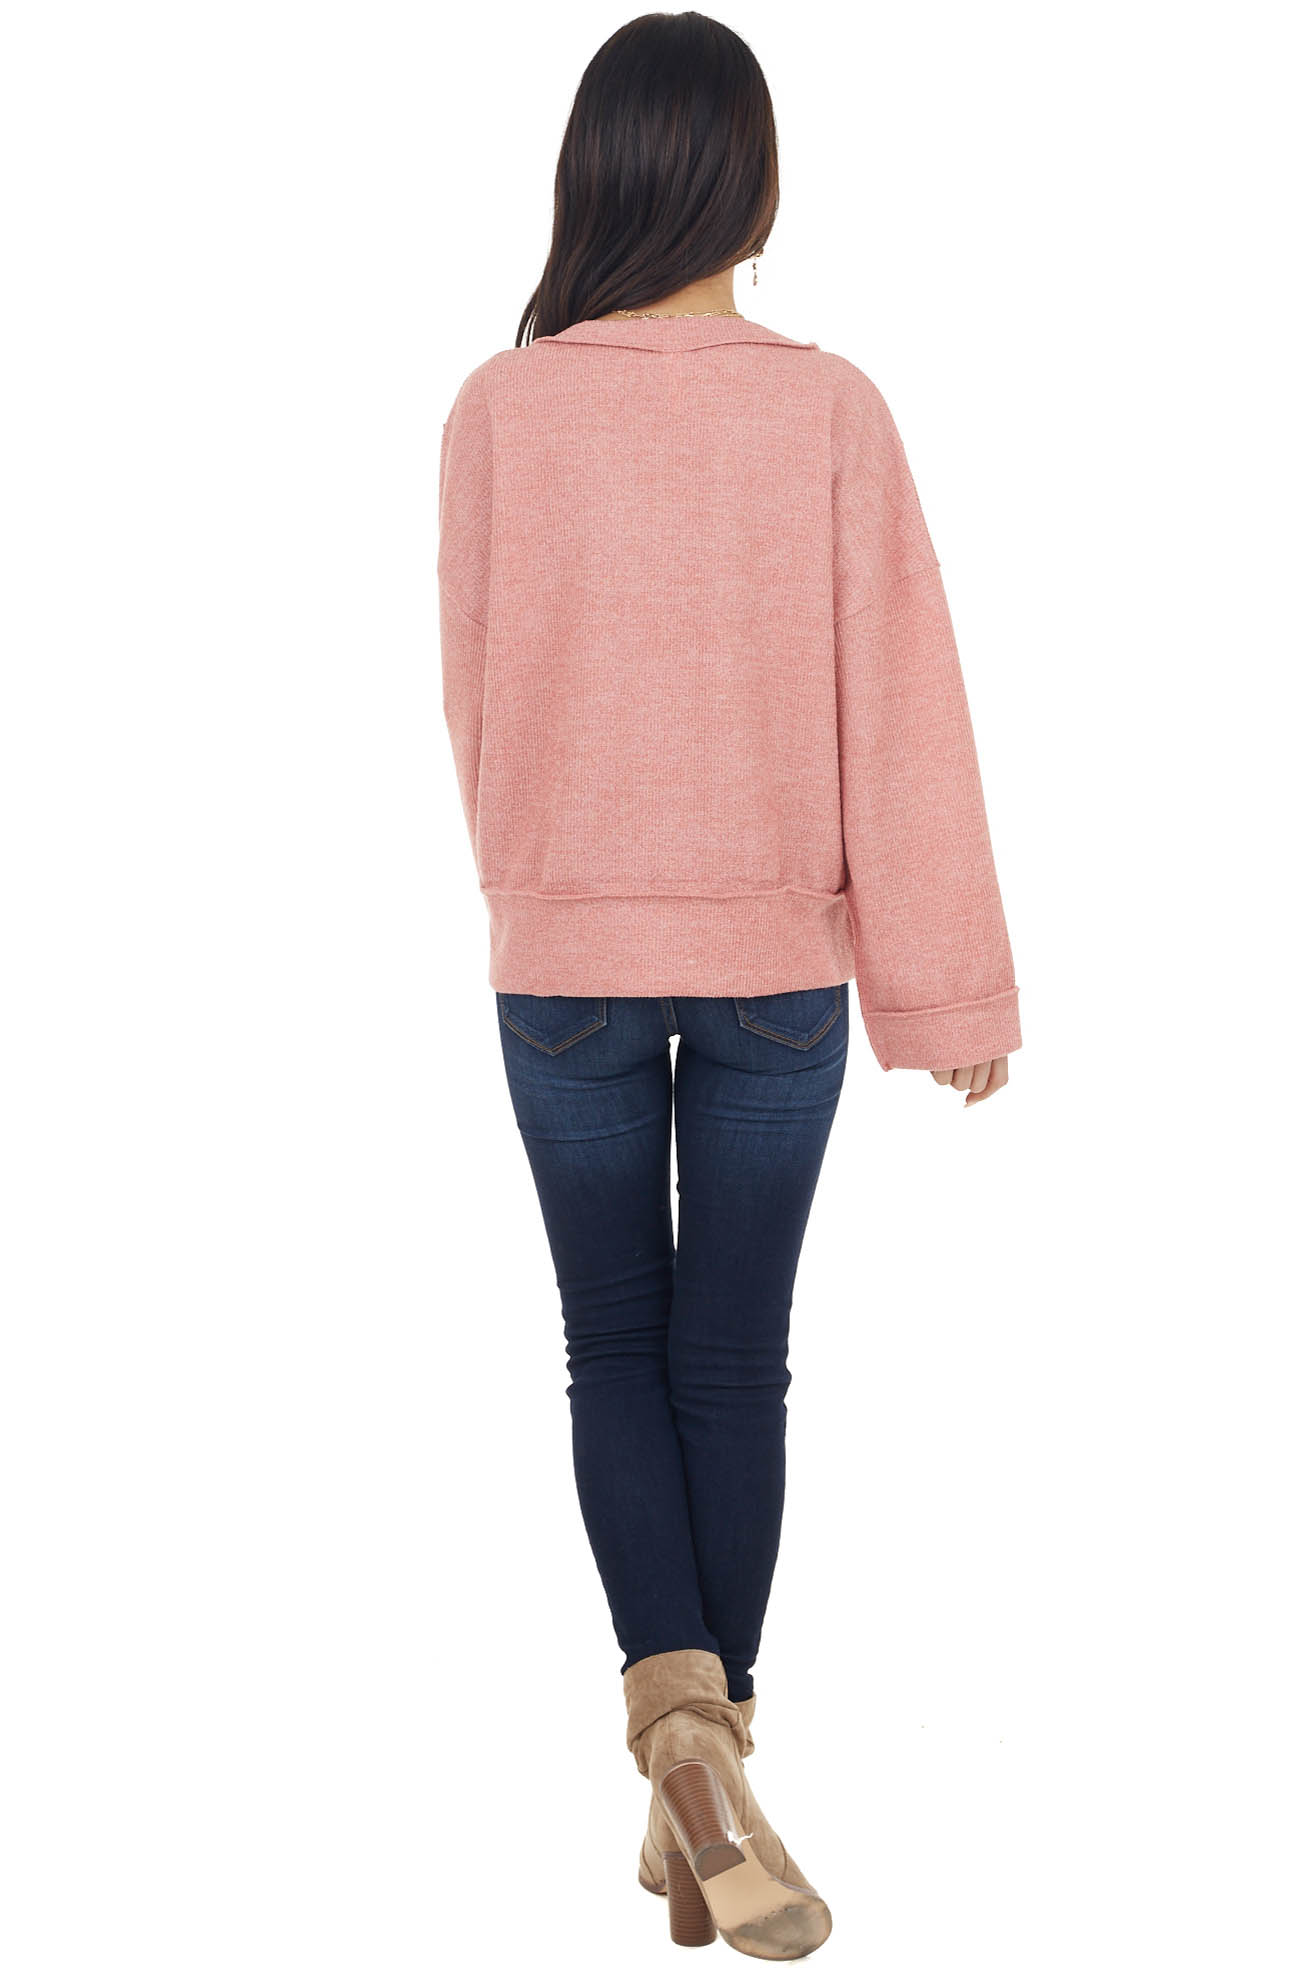 Light Punch V Neck Long Sleeve Top with Side Slits